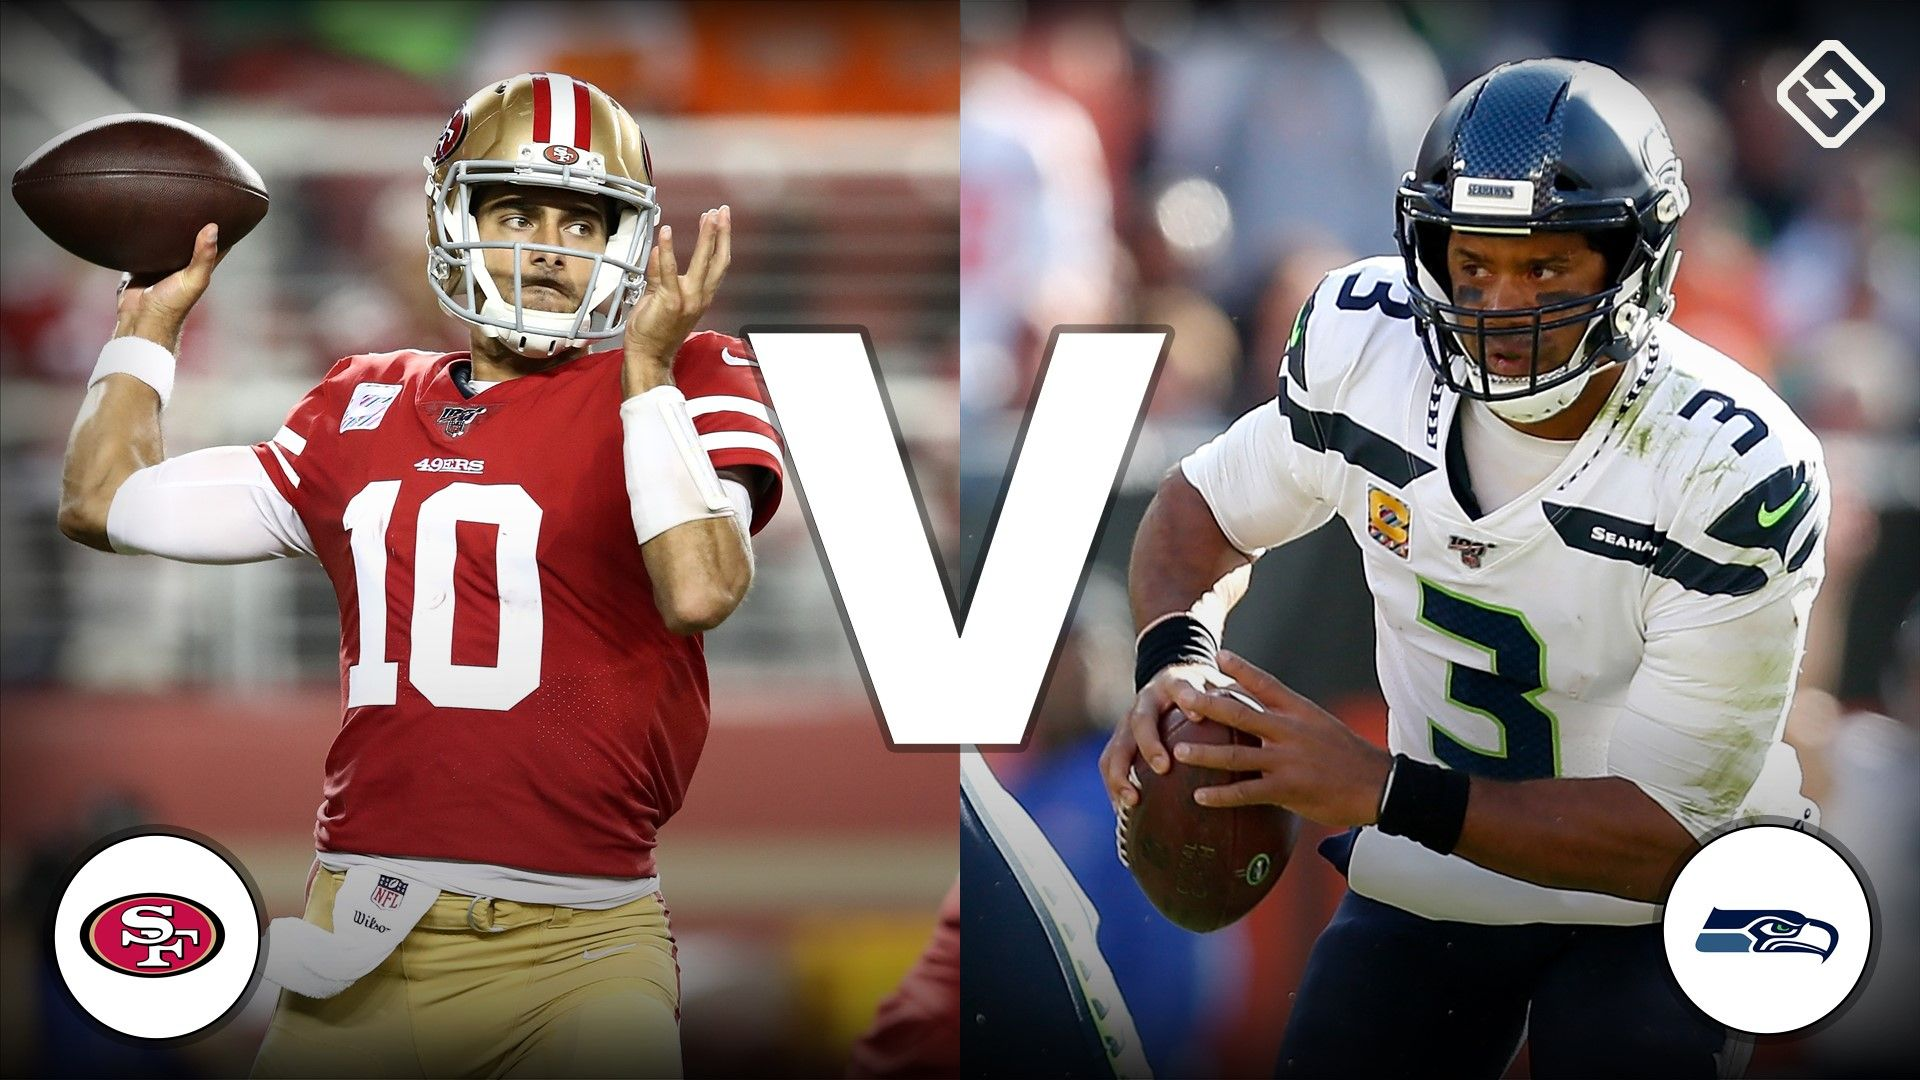 The highly anticipated matchup in week 10 has arrived as